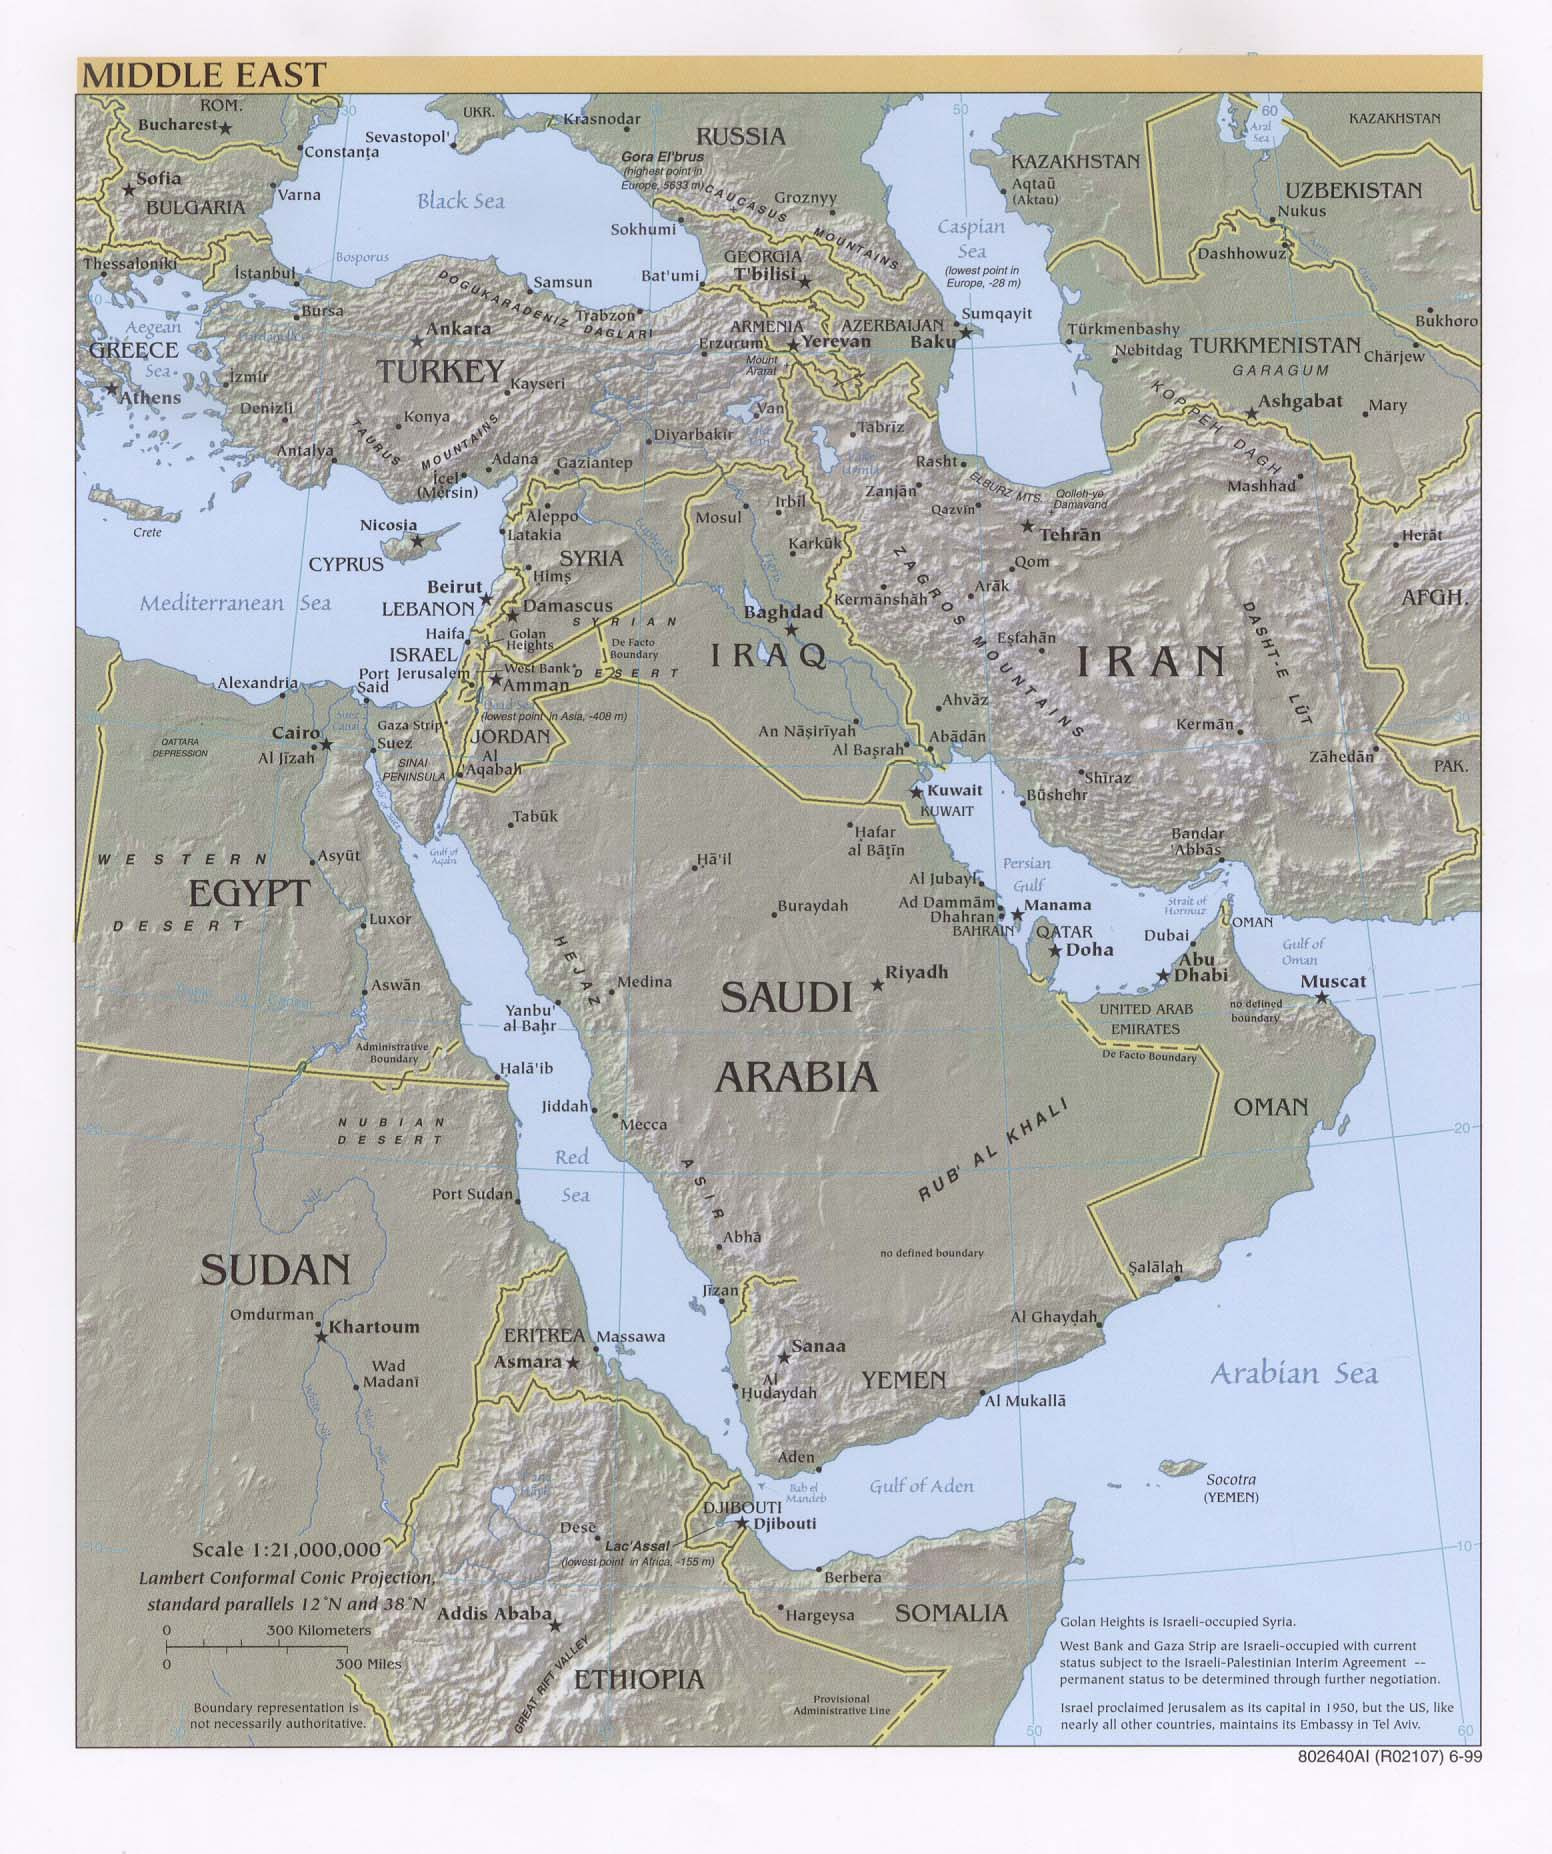 Labeled Physical Map Of Middle East Photo Gallery For Photographers ...